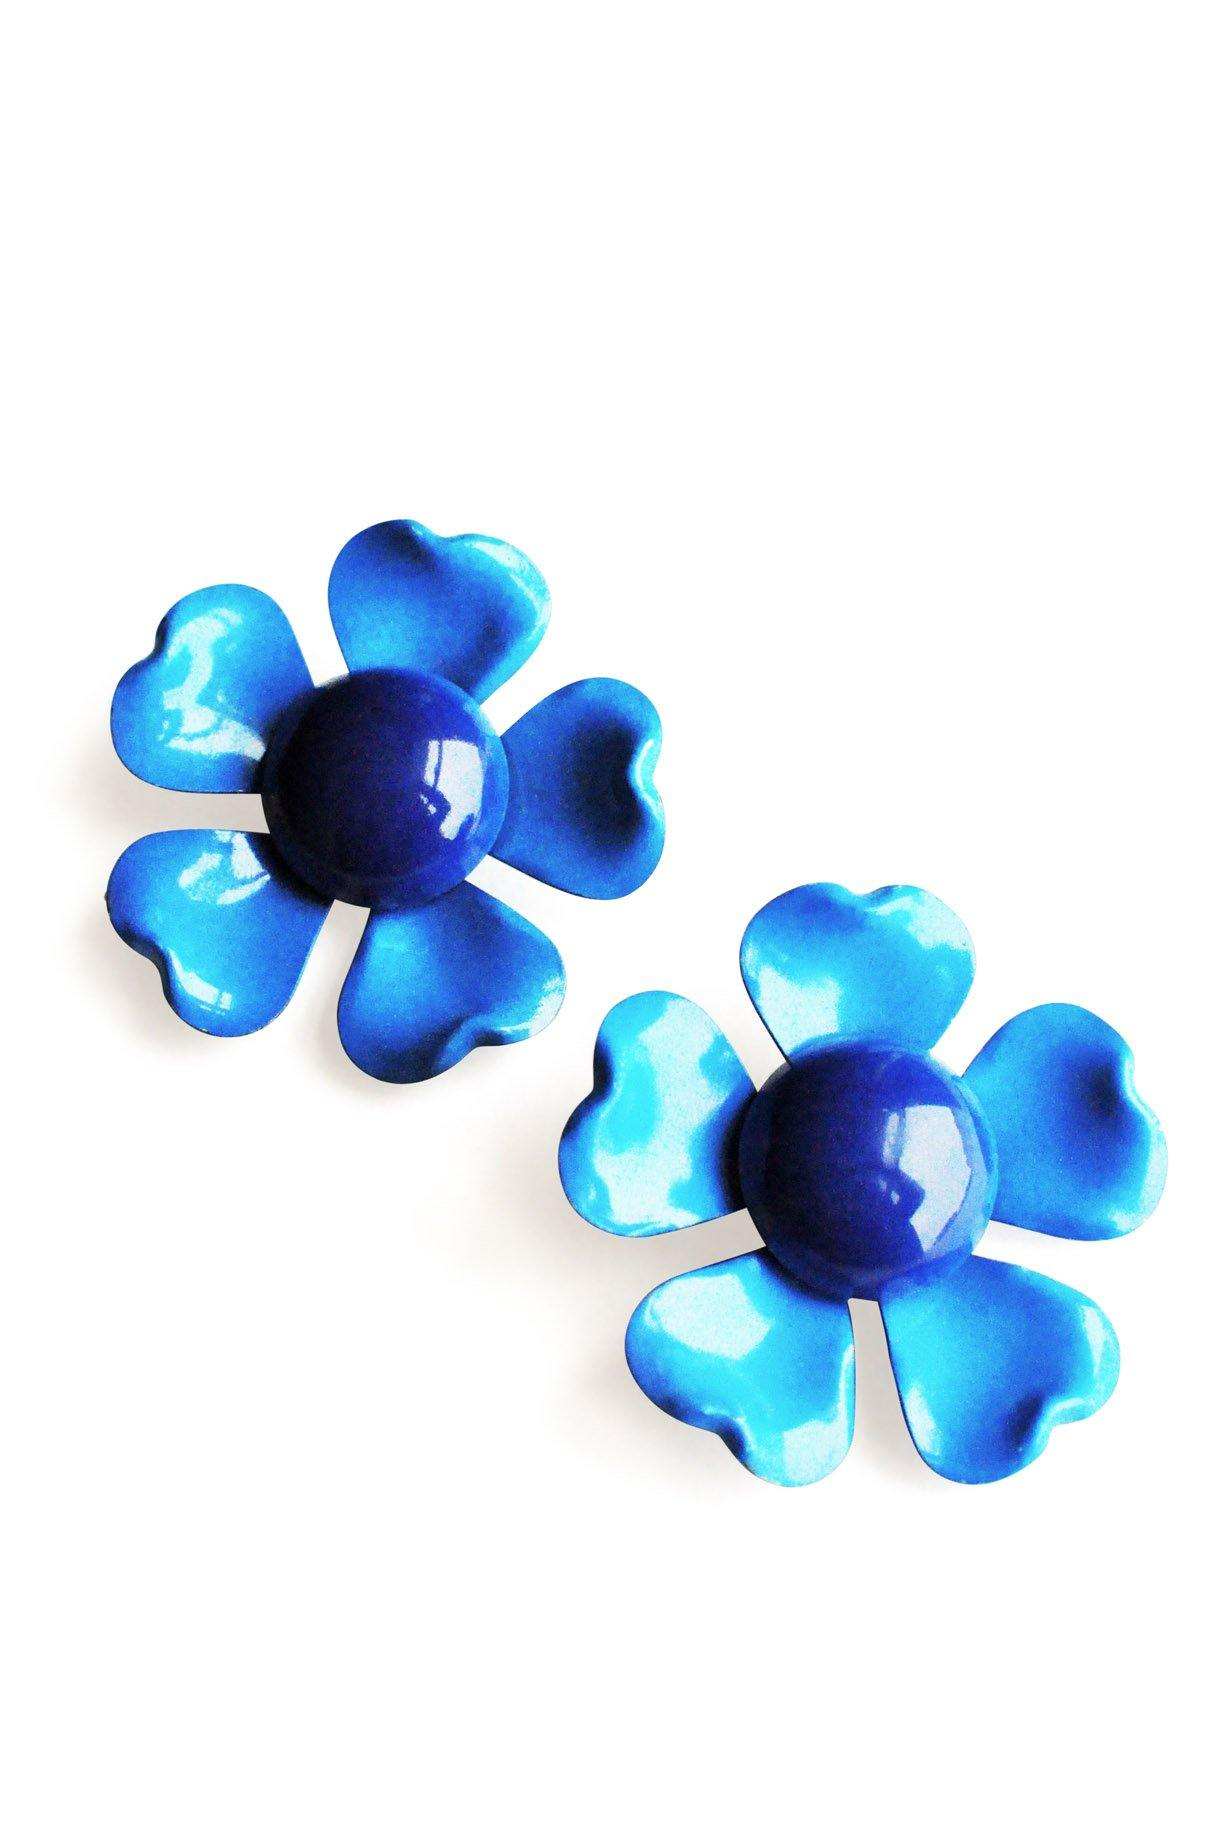 Blue Floral Clip-on Earrings from Sweet & Spark